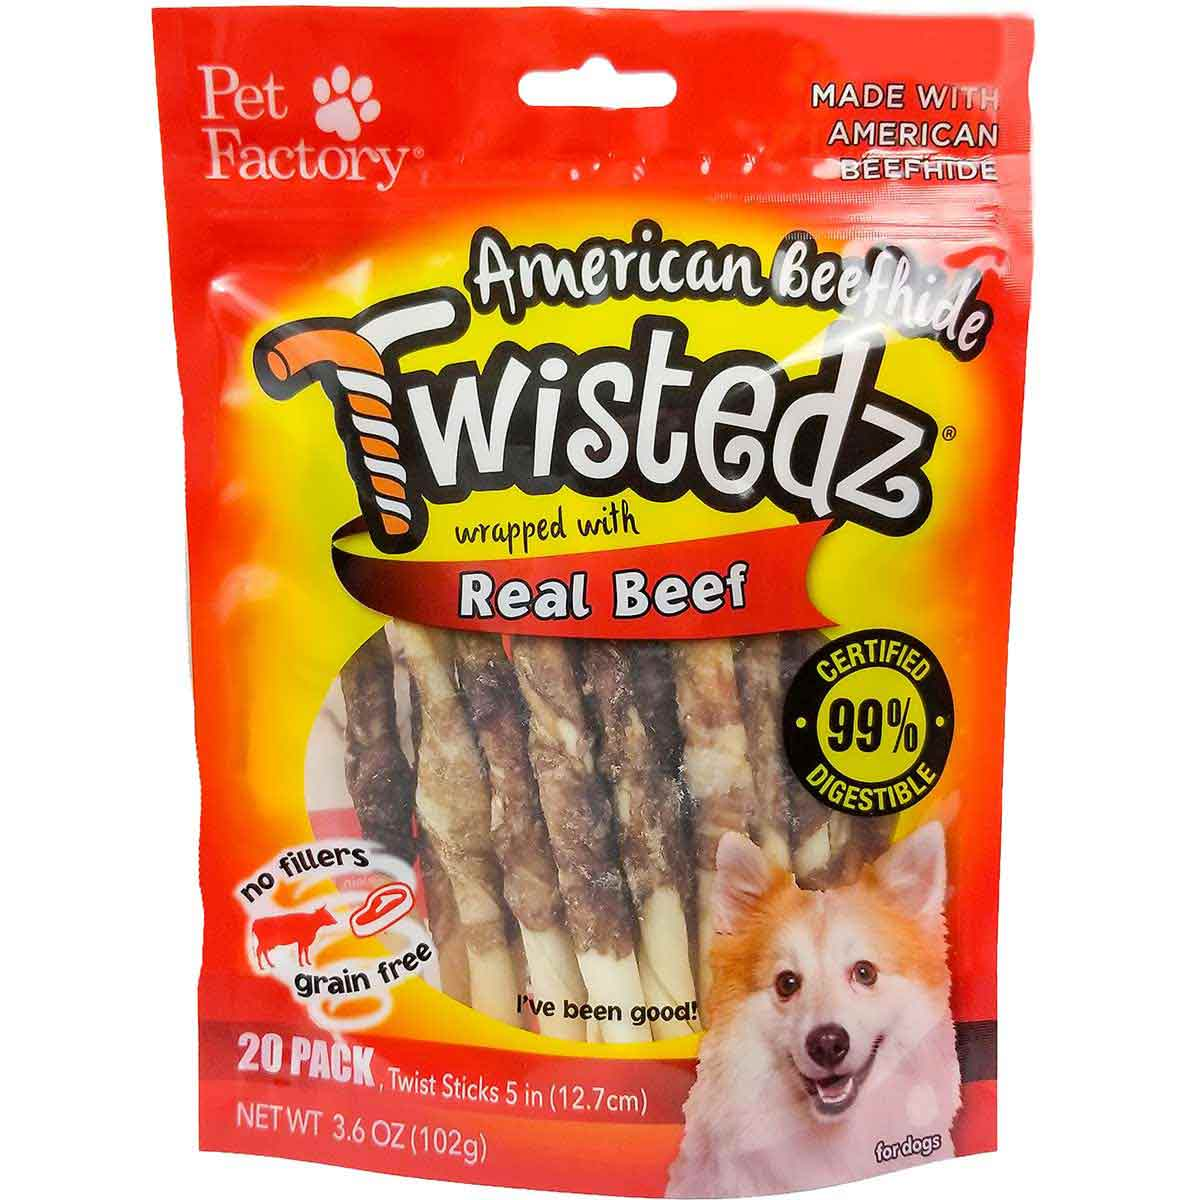 20 Pack Pet Factory Twistedz Beef 5 inch Sticks Dog Treats